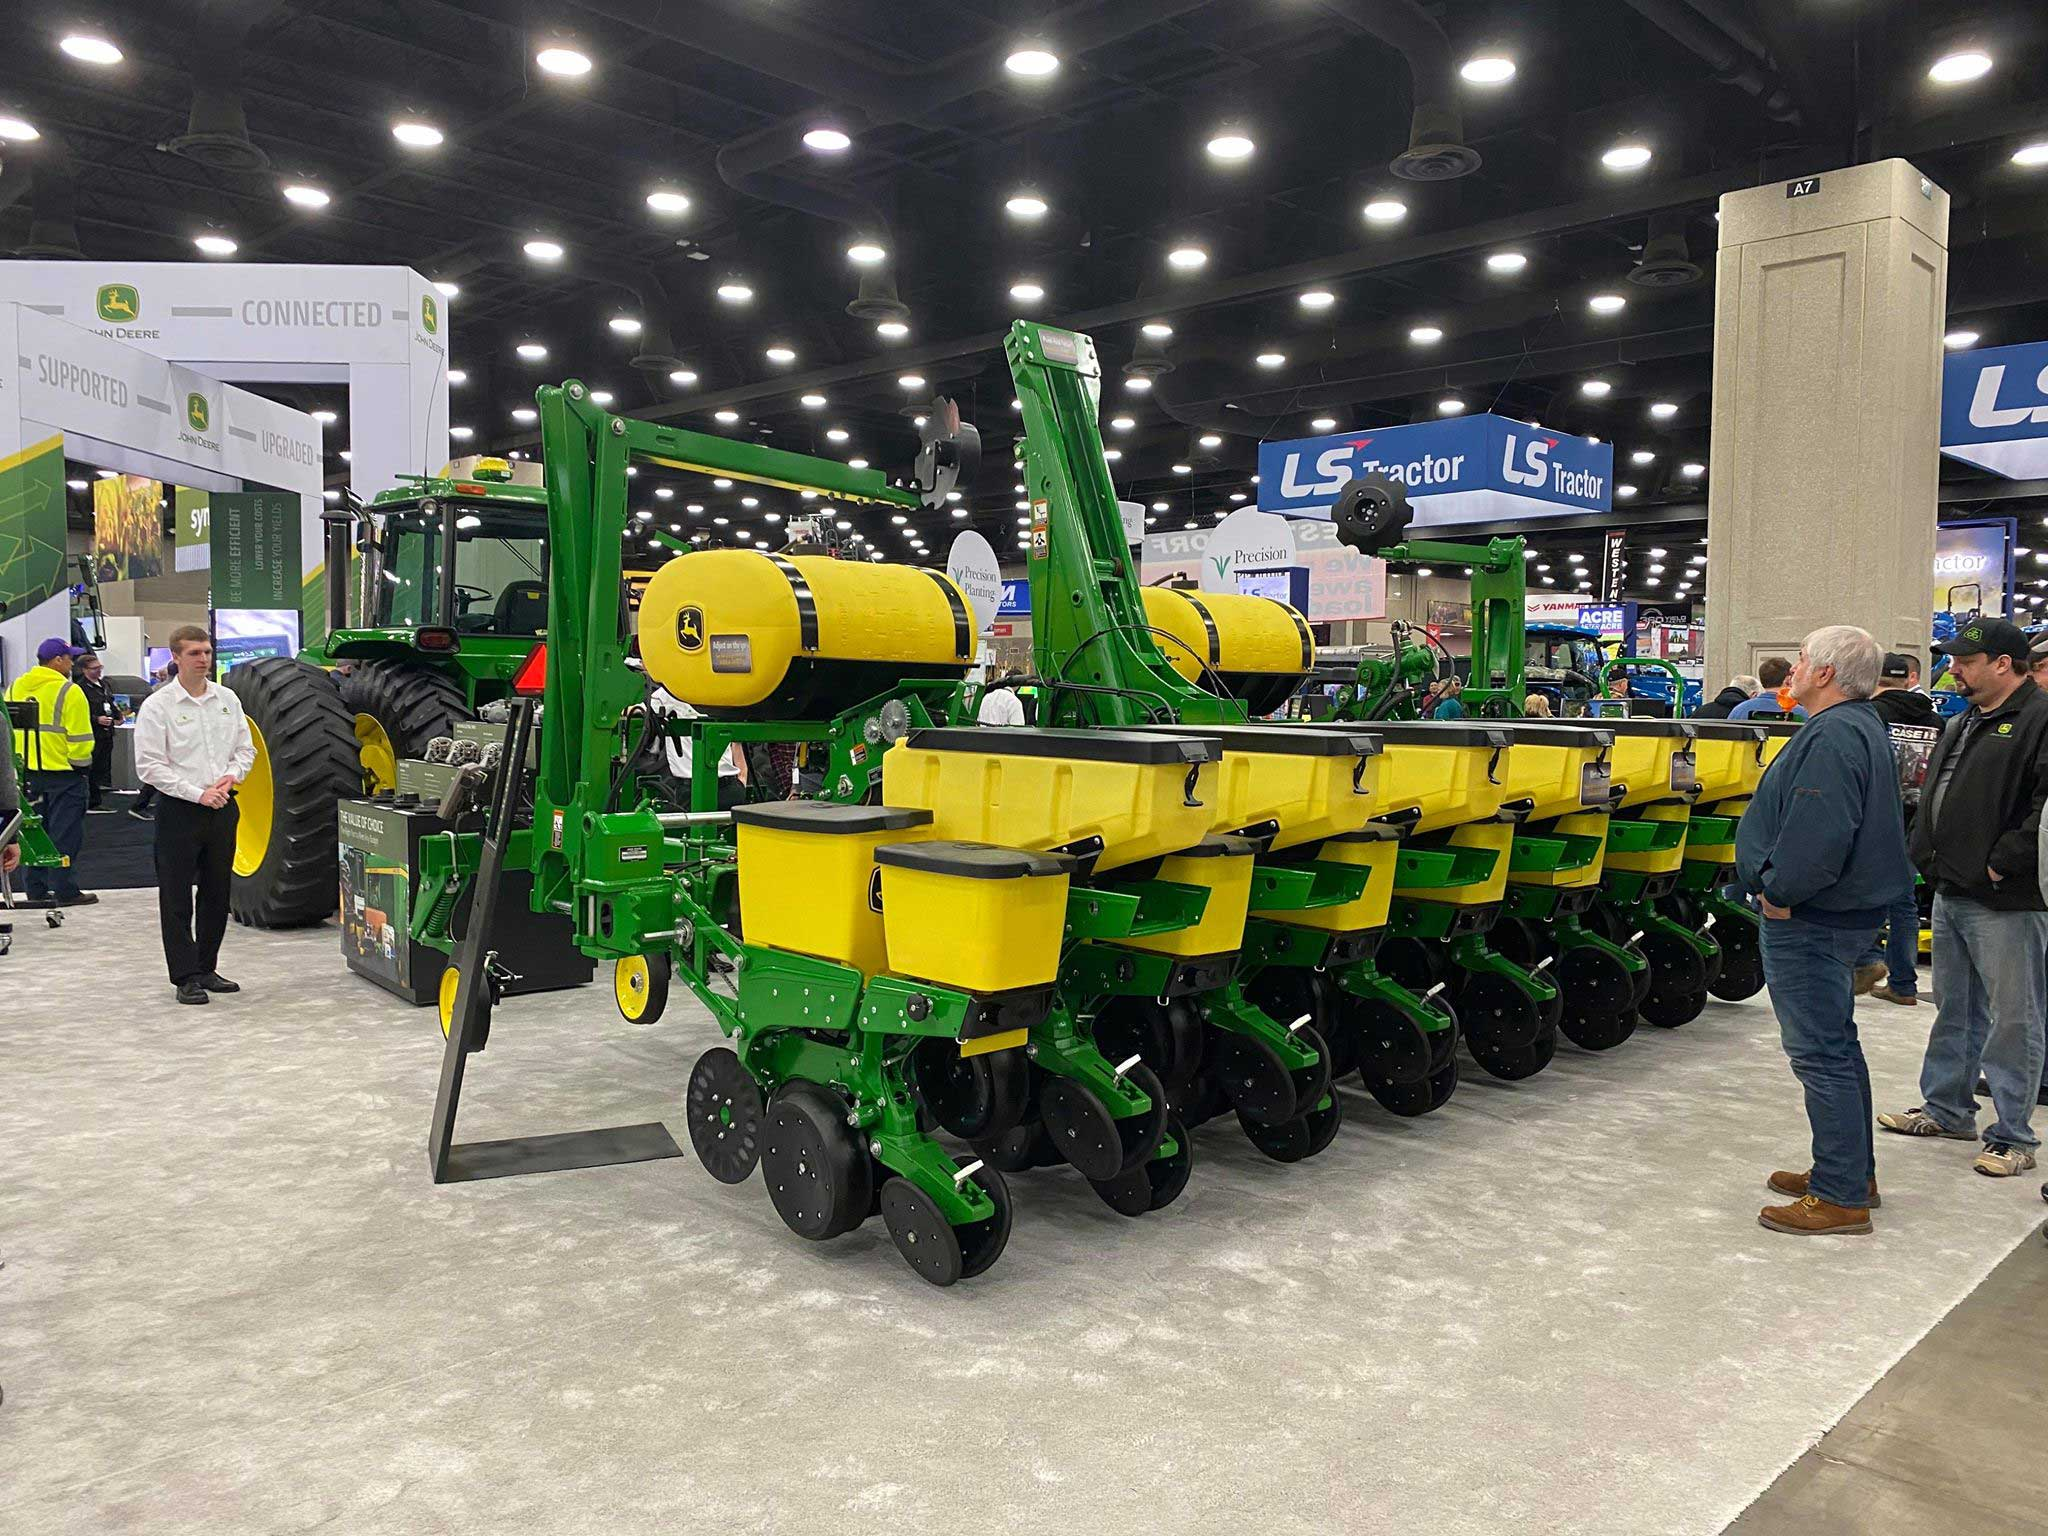 Image Gallery: Sizing up the 2015 Lineup of New John Deere